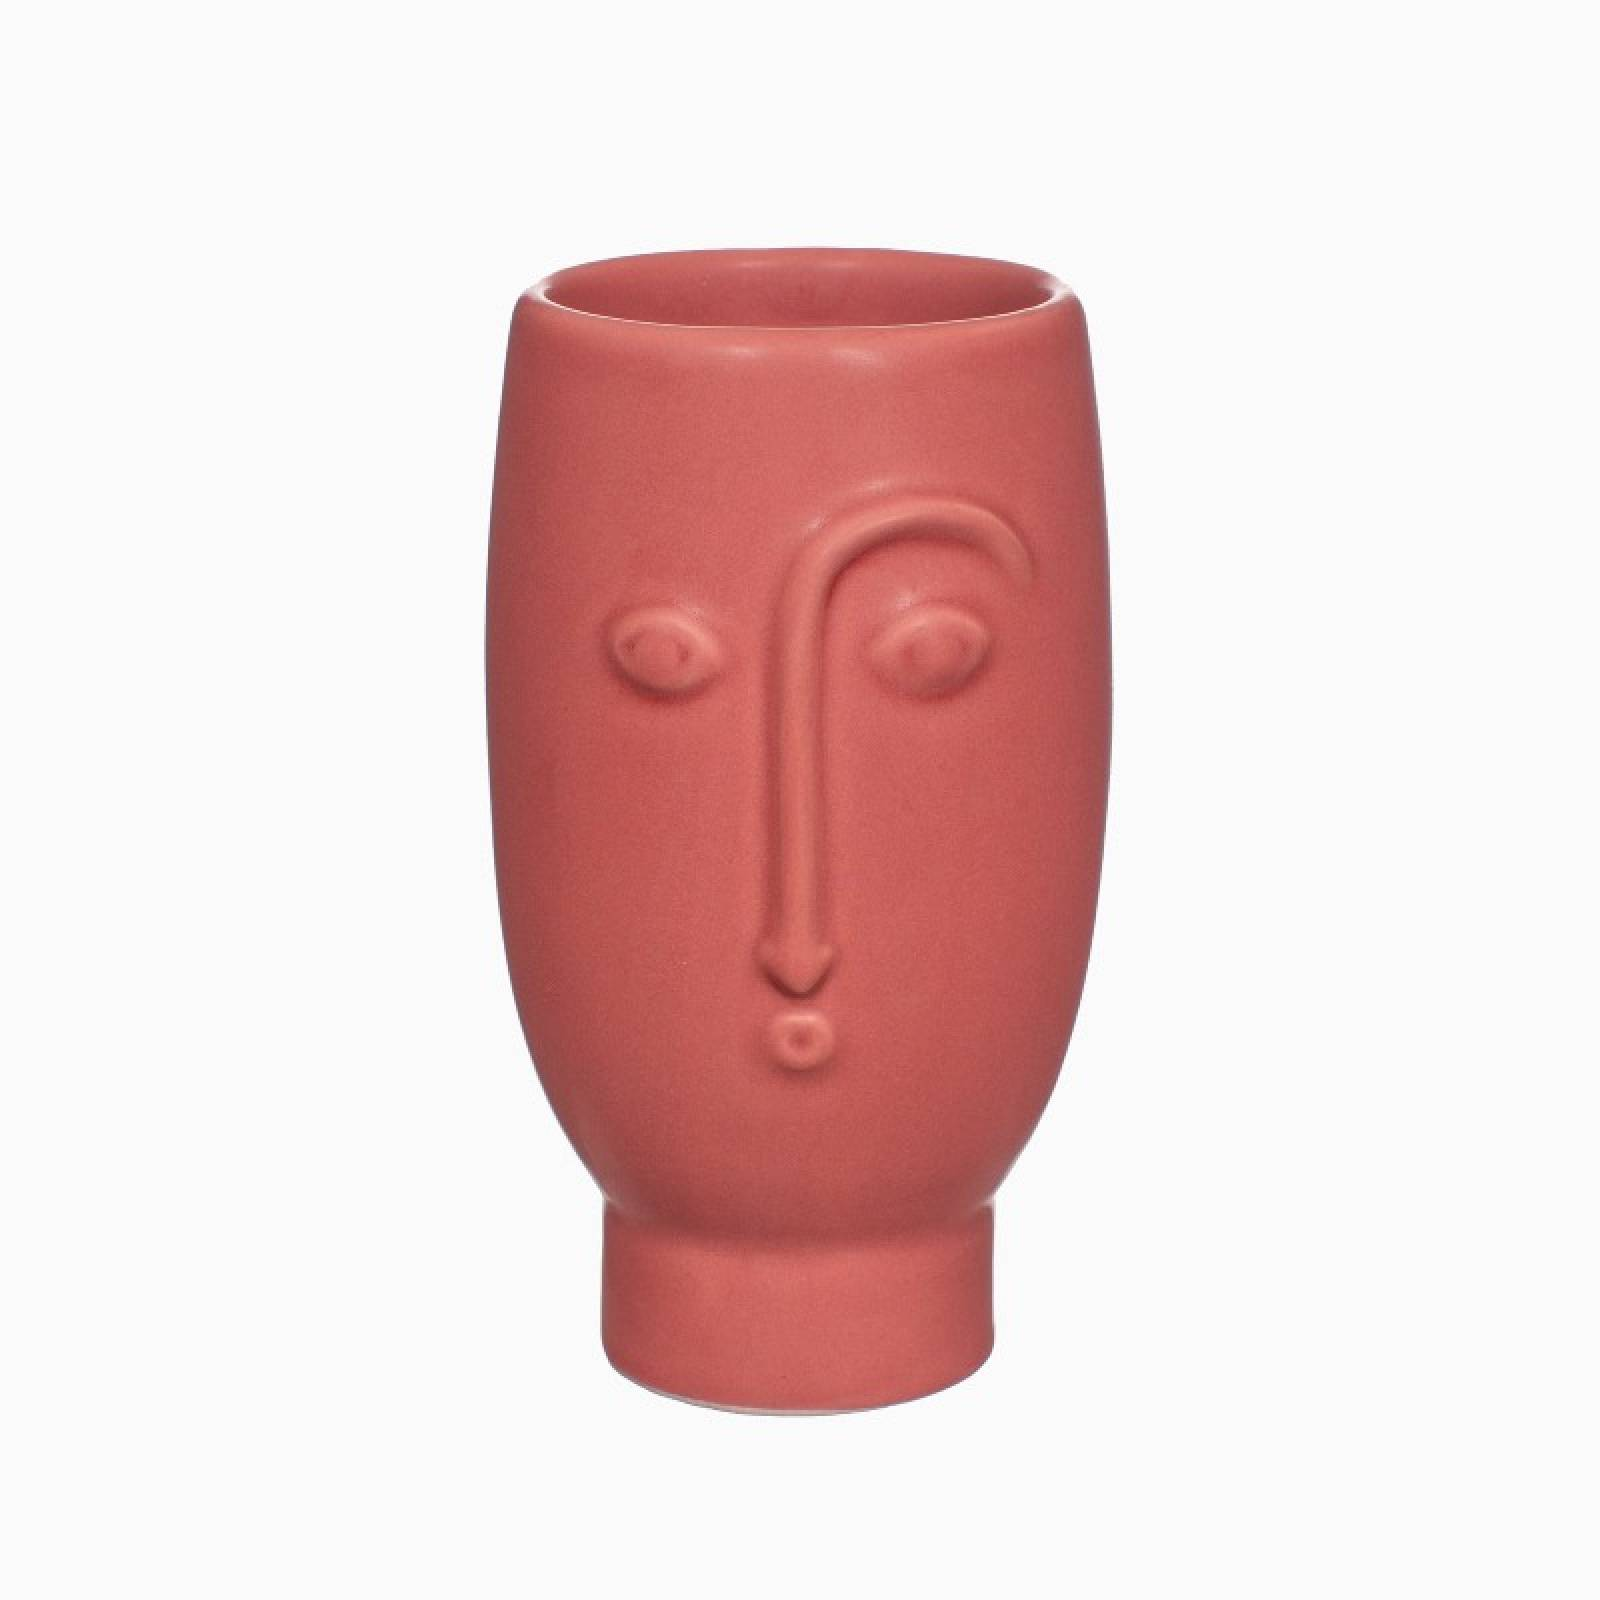 Small Face Vase In Matte Red Finish H:12cm